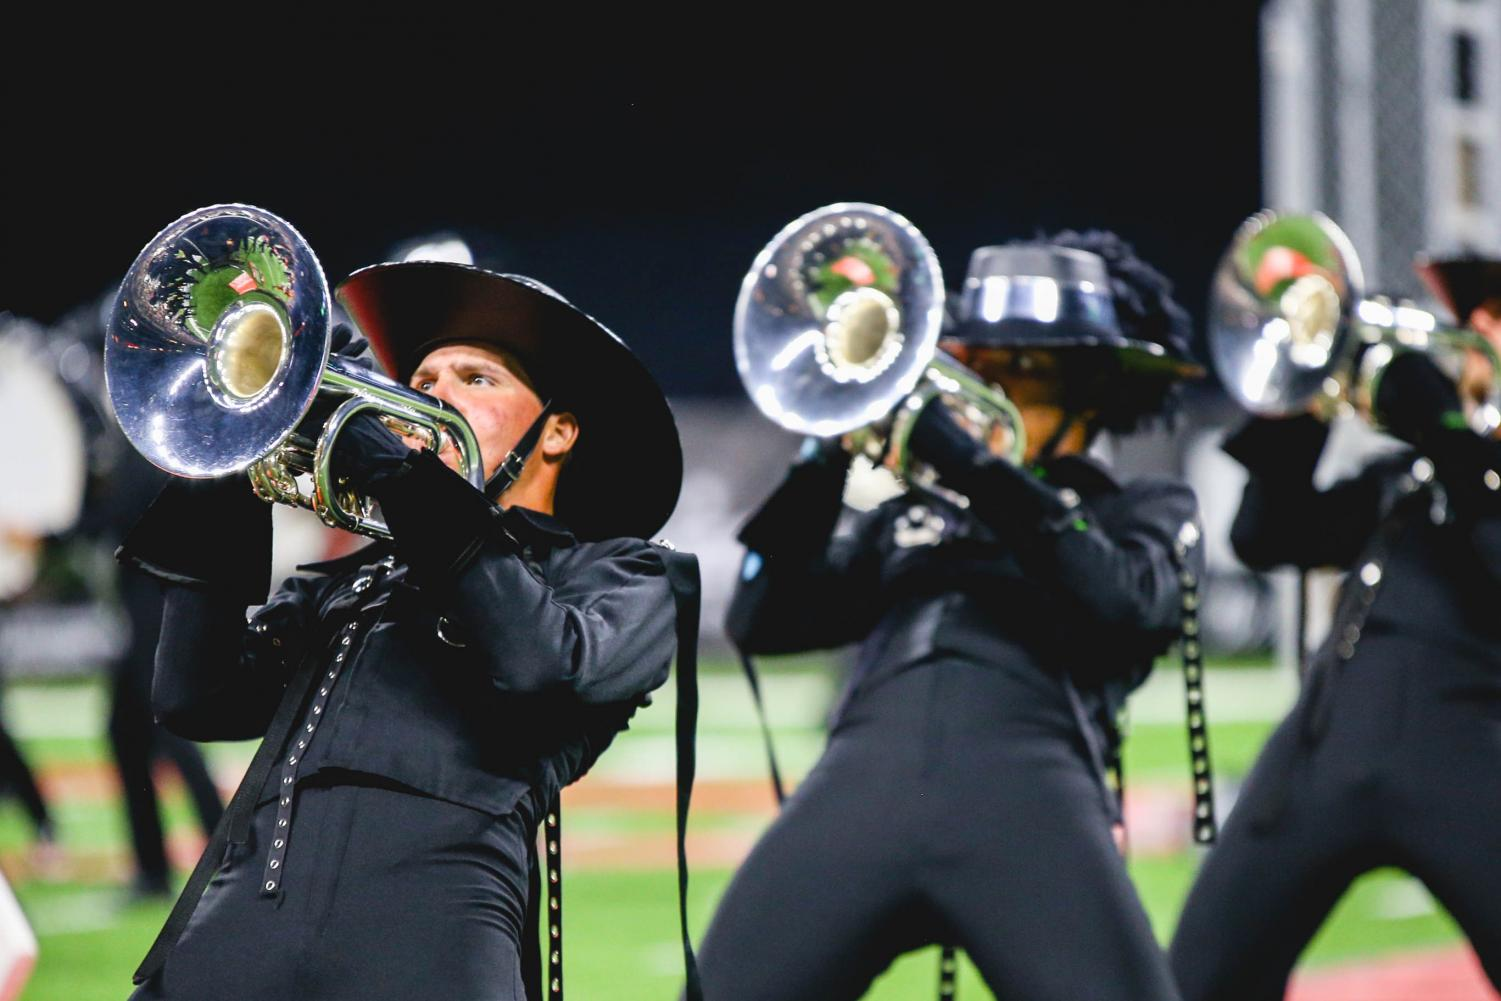 Photo courtesy of: https://www.journal-topics.com/articles/cavaliers-beat-goes-on-70-years-6th-place-in-dci/